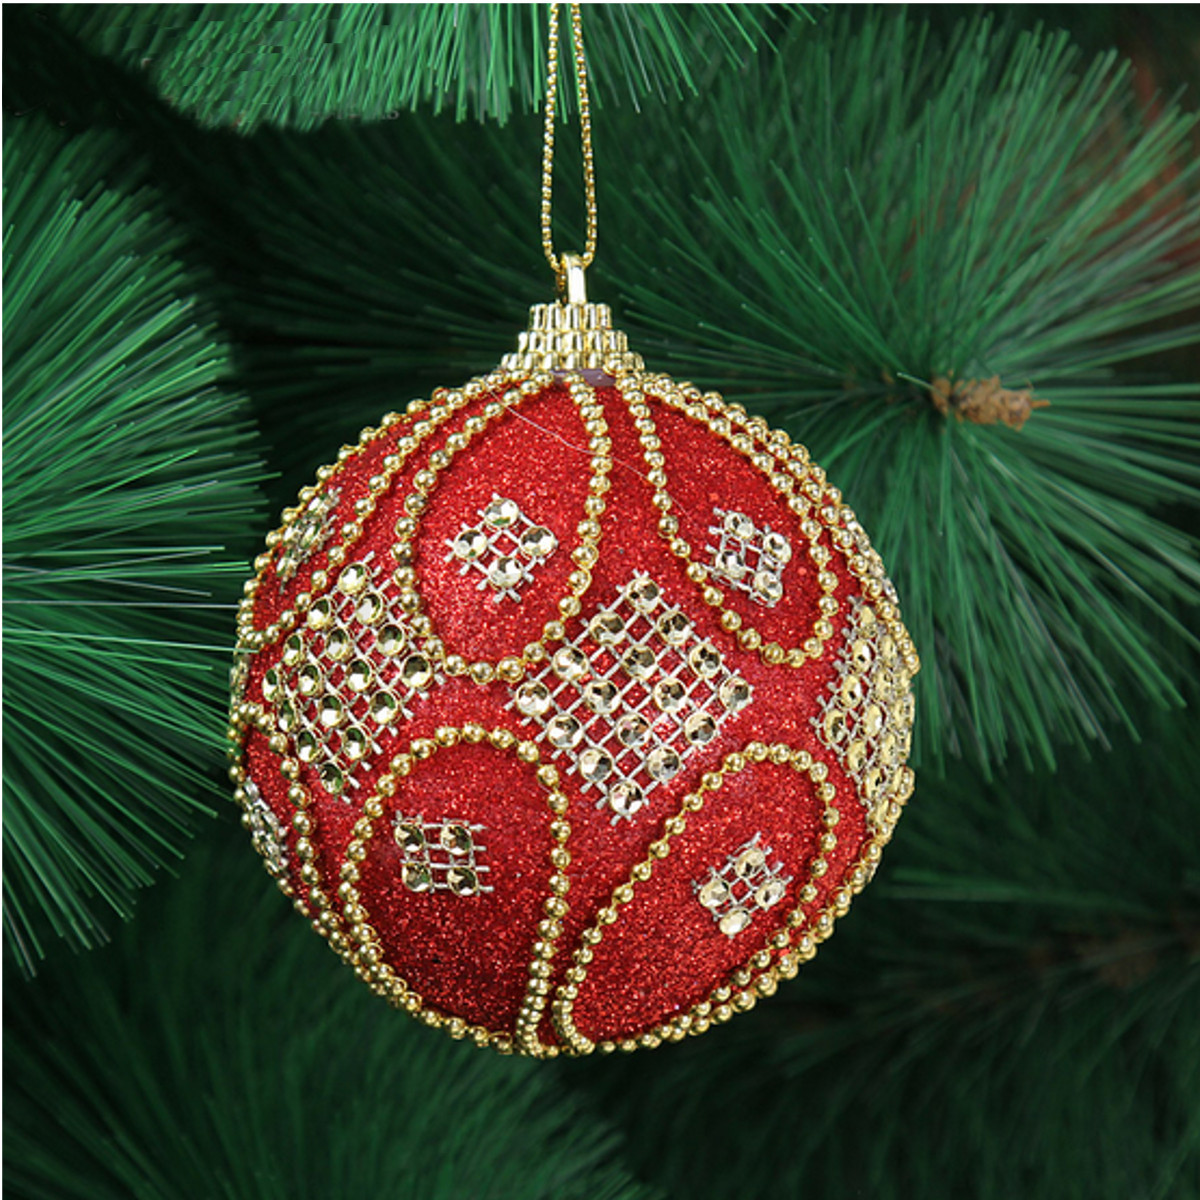 Decorating Christmas Balls With Glitter : Cm balls rhinestone baubles glitter party christmas xmas